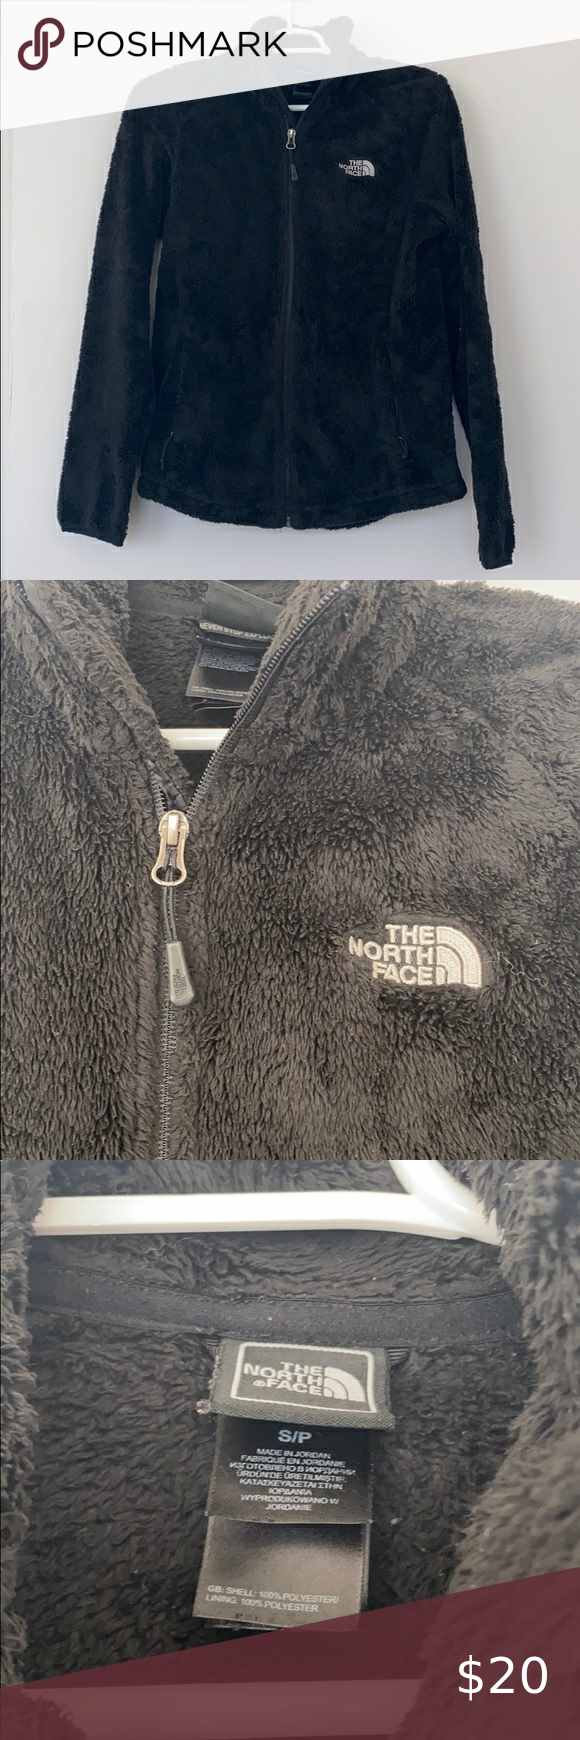 The North Face Osito Jacket In Black Clothes Design North Face Osito North Face Jacket [ 1740 x 580 Pixel ]